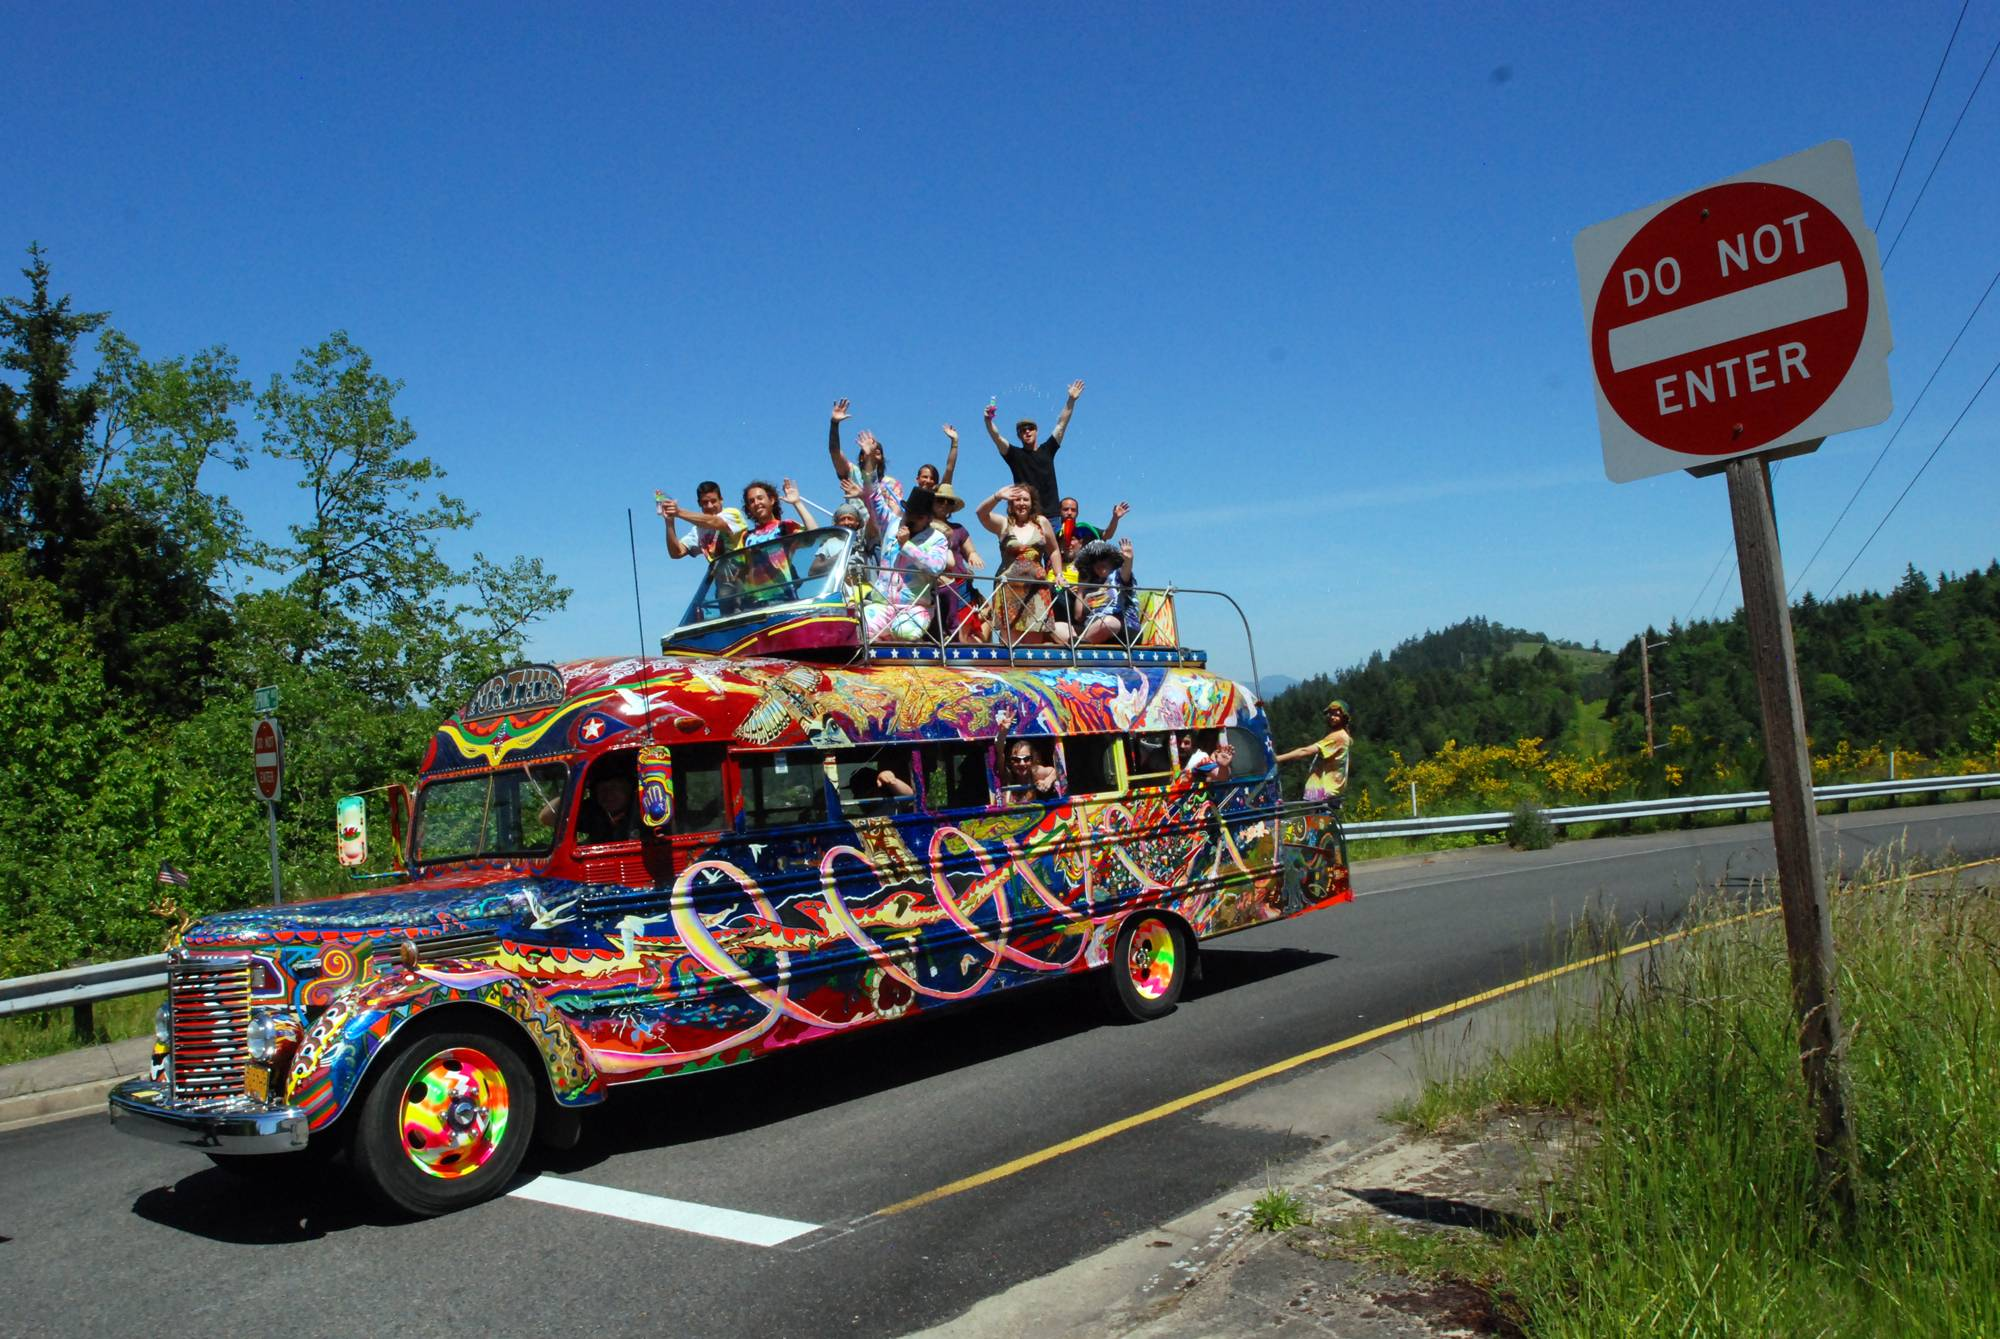 The reincarnation of author Ken Kesey's psychedelic bus Further stops along a road in Eugene, Ore. Zane Kesey, son of the late author, is on Kickstarter raising money for a cross-country trip commemorating the 1964 LSD-fueled bus trip that became a touchstone of the 1960s.